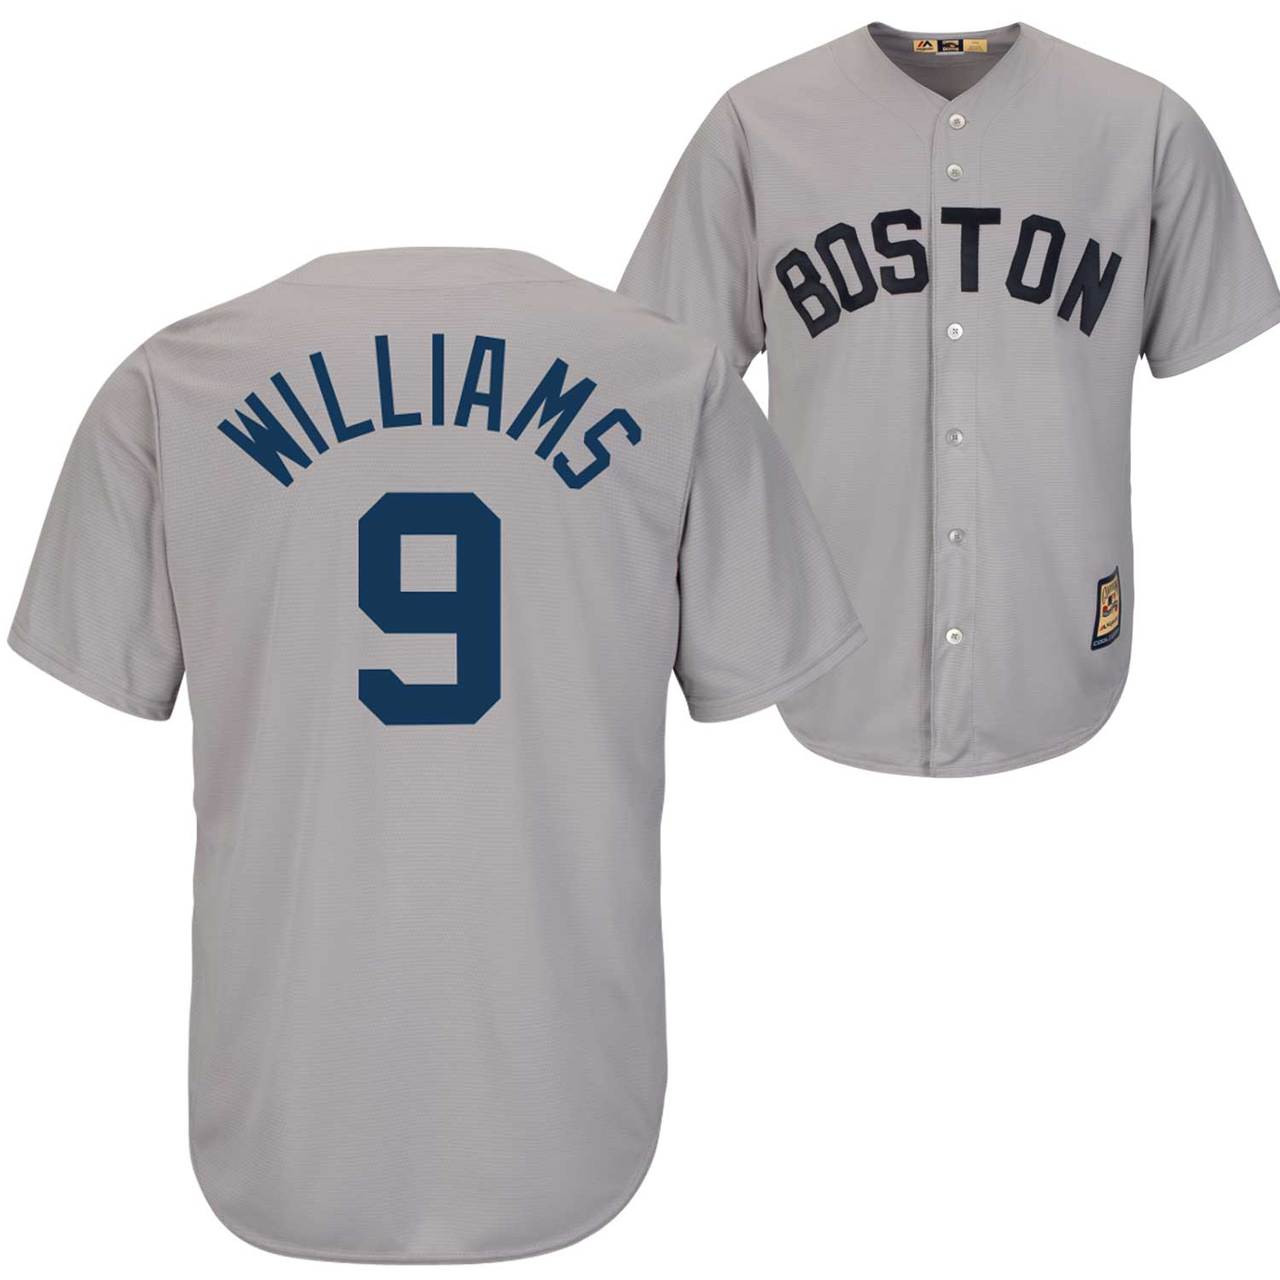 Ted Williams Jersey - Boston Red Sox Cooperstown Throwback Jersey photo